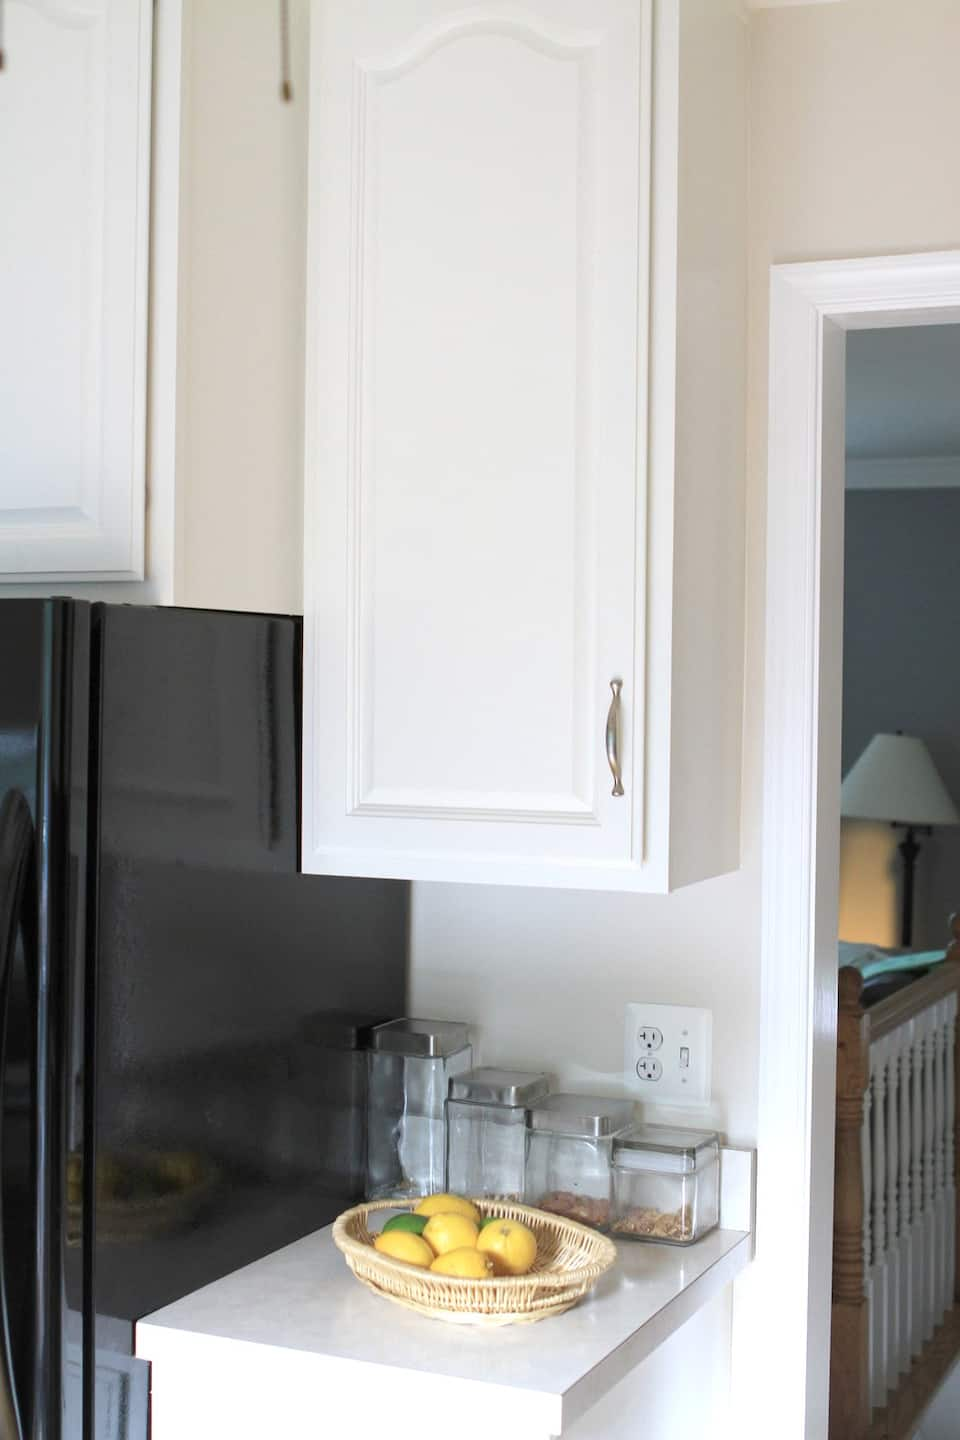 tall white kitchen cabinet with fruit on counter below